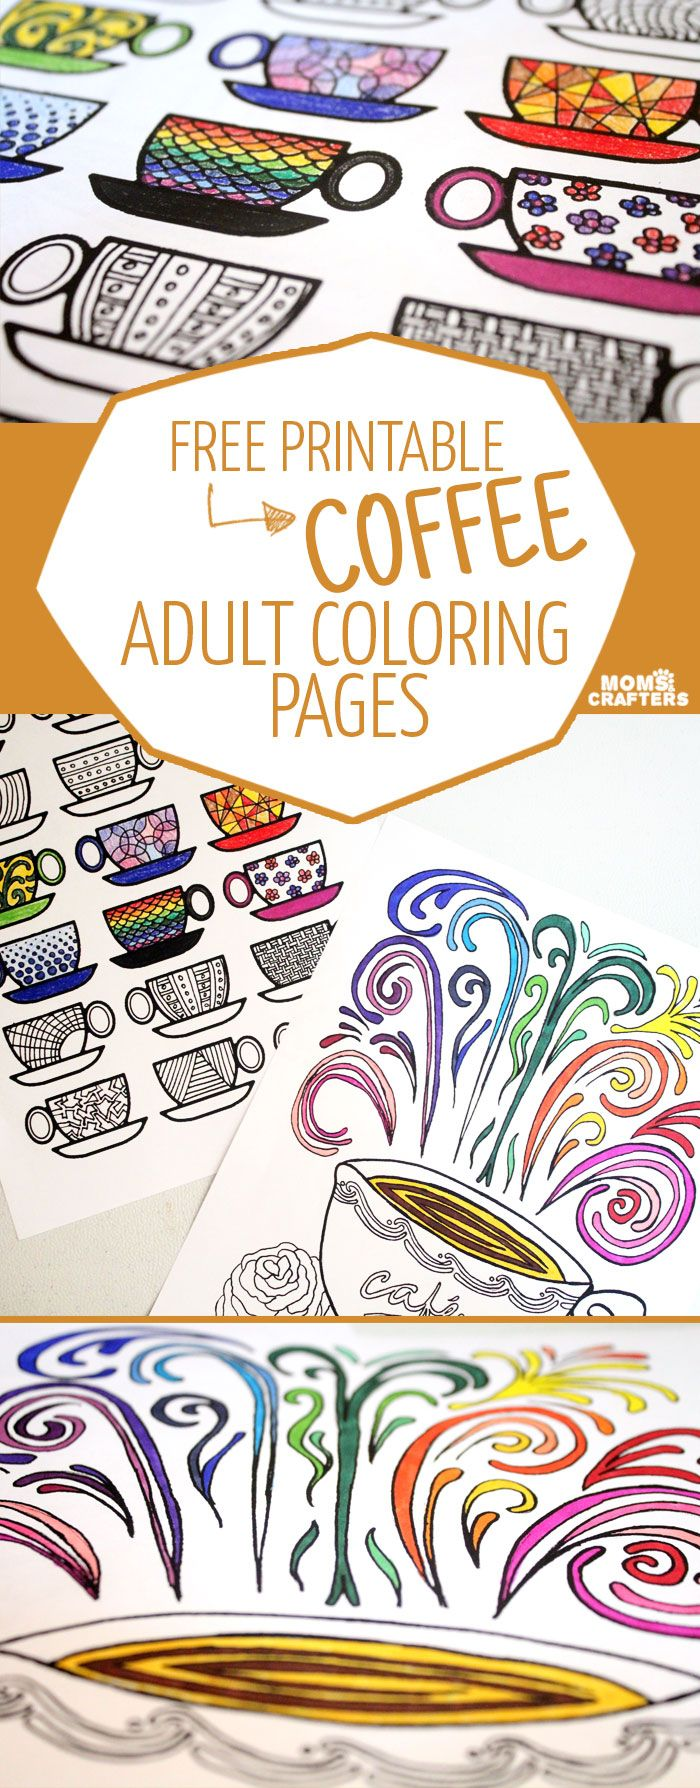 FREE Printable Coffee Adult Coloring Pages